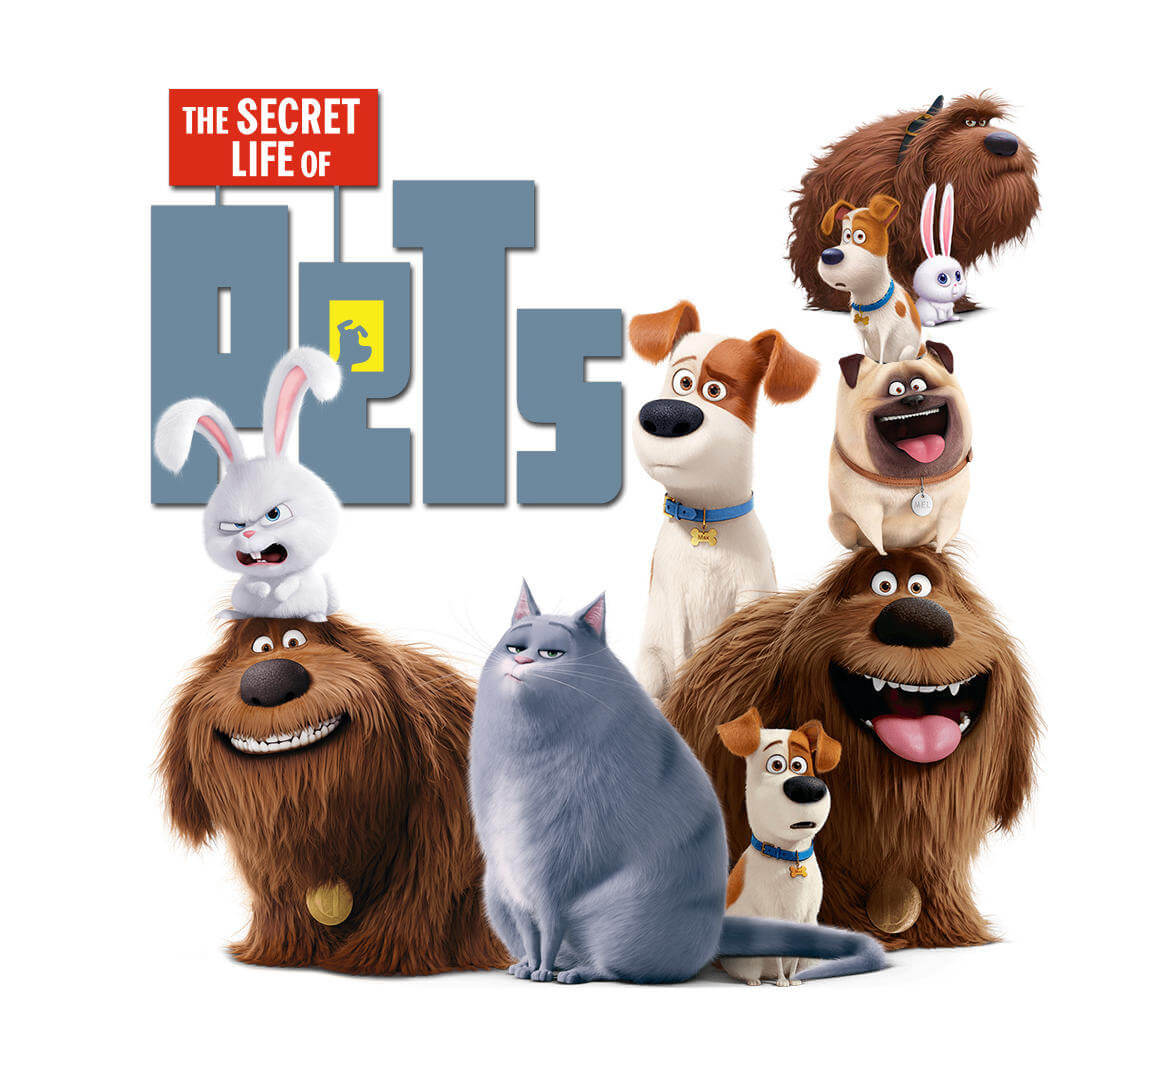 Mini-Oscars: for the best children's movies of 2016 voted on by children   Halfpint Design - Secret Life of Pets